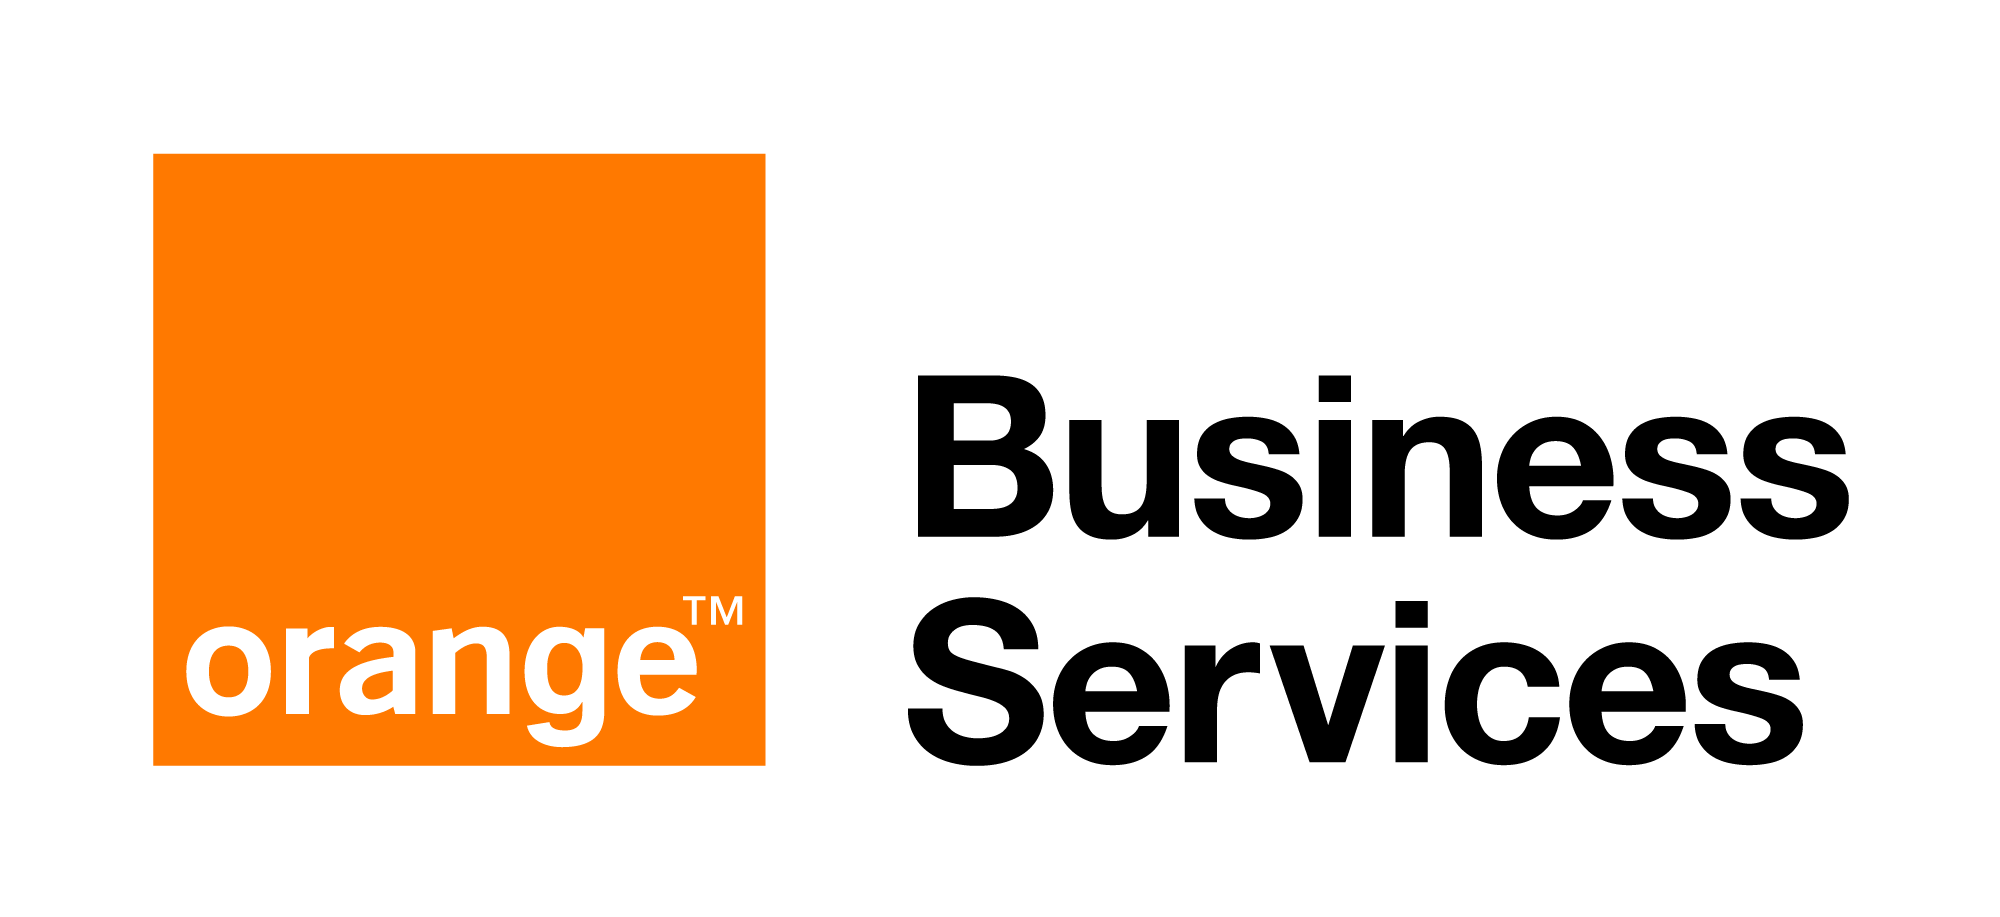 Orange Business Services - Leverage our consulting expertise, global network, end-to-end service approach and innovation capabilities to elevate customer engagement